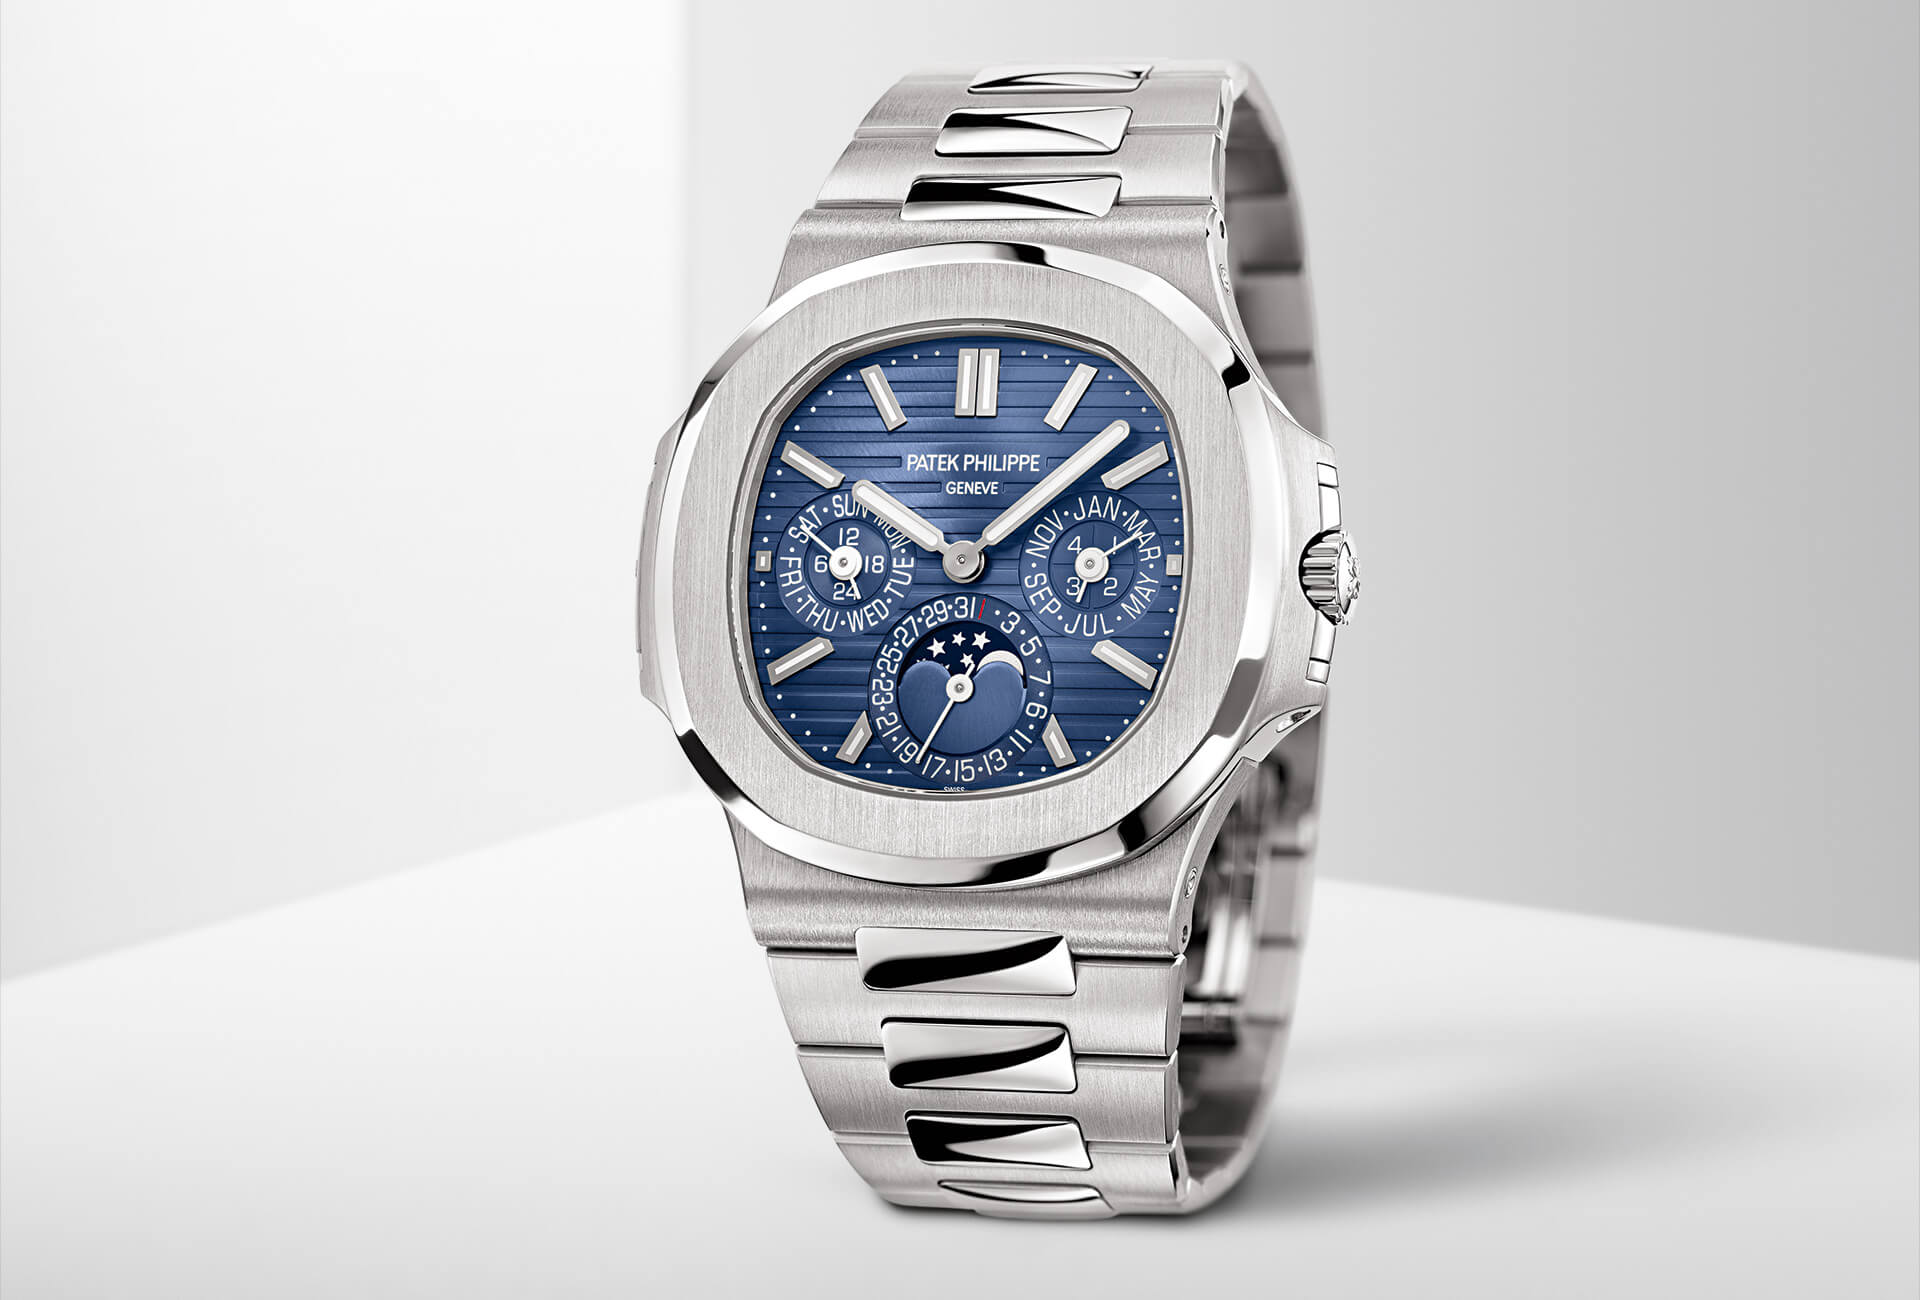 Patek Philippe The Wise Man Of Watches Fhh Journal